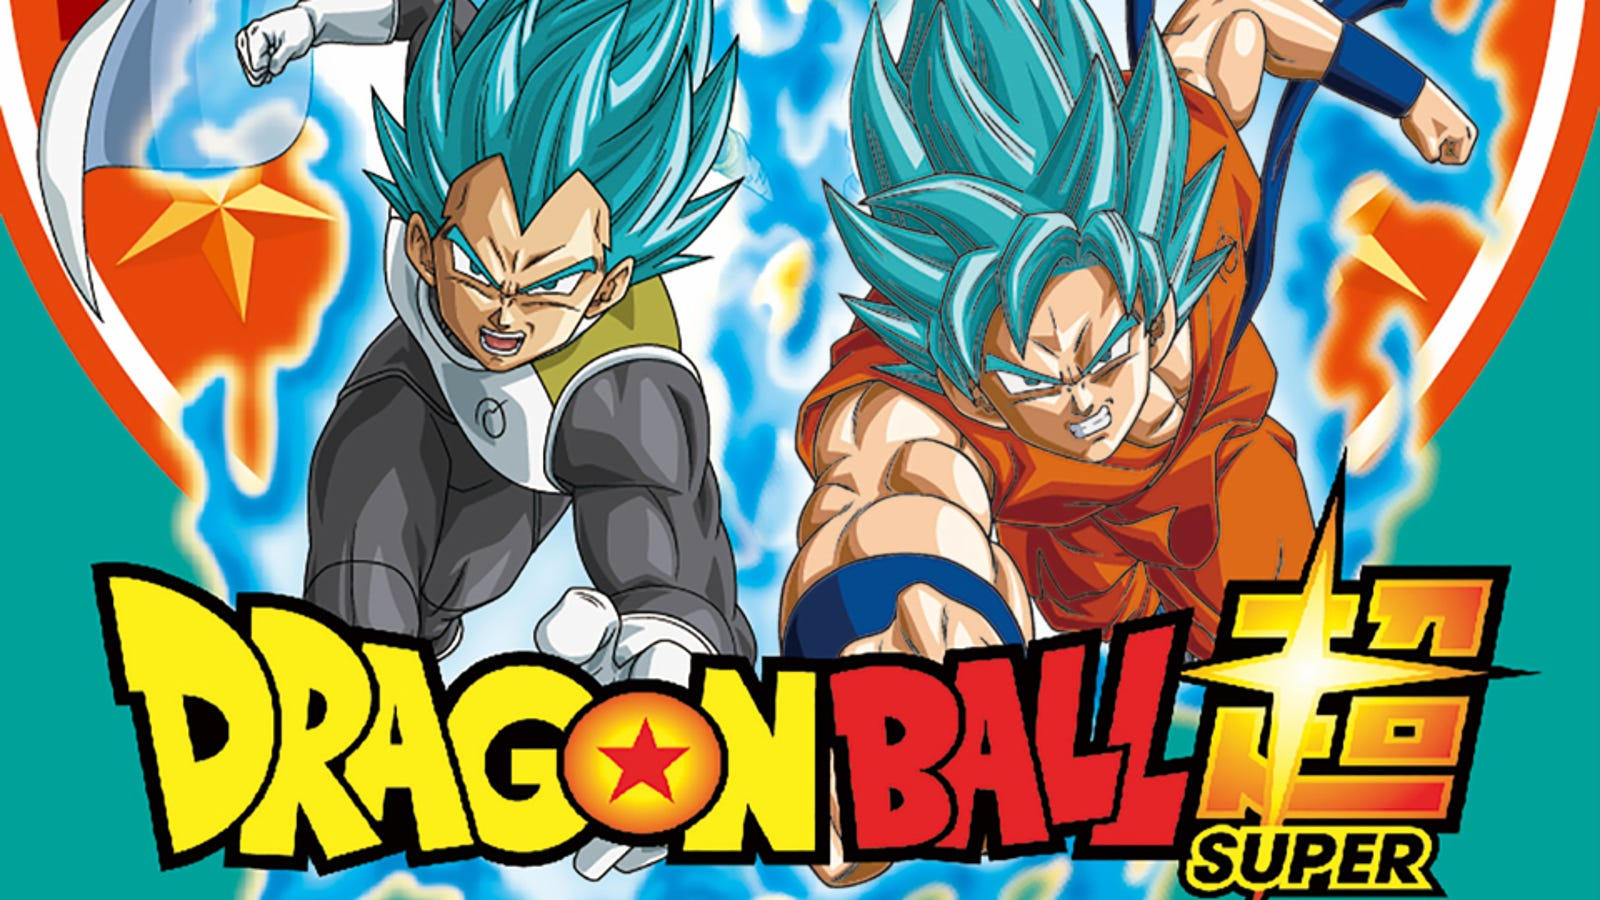 The dragon ball super tv anime is ending this march update